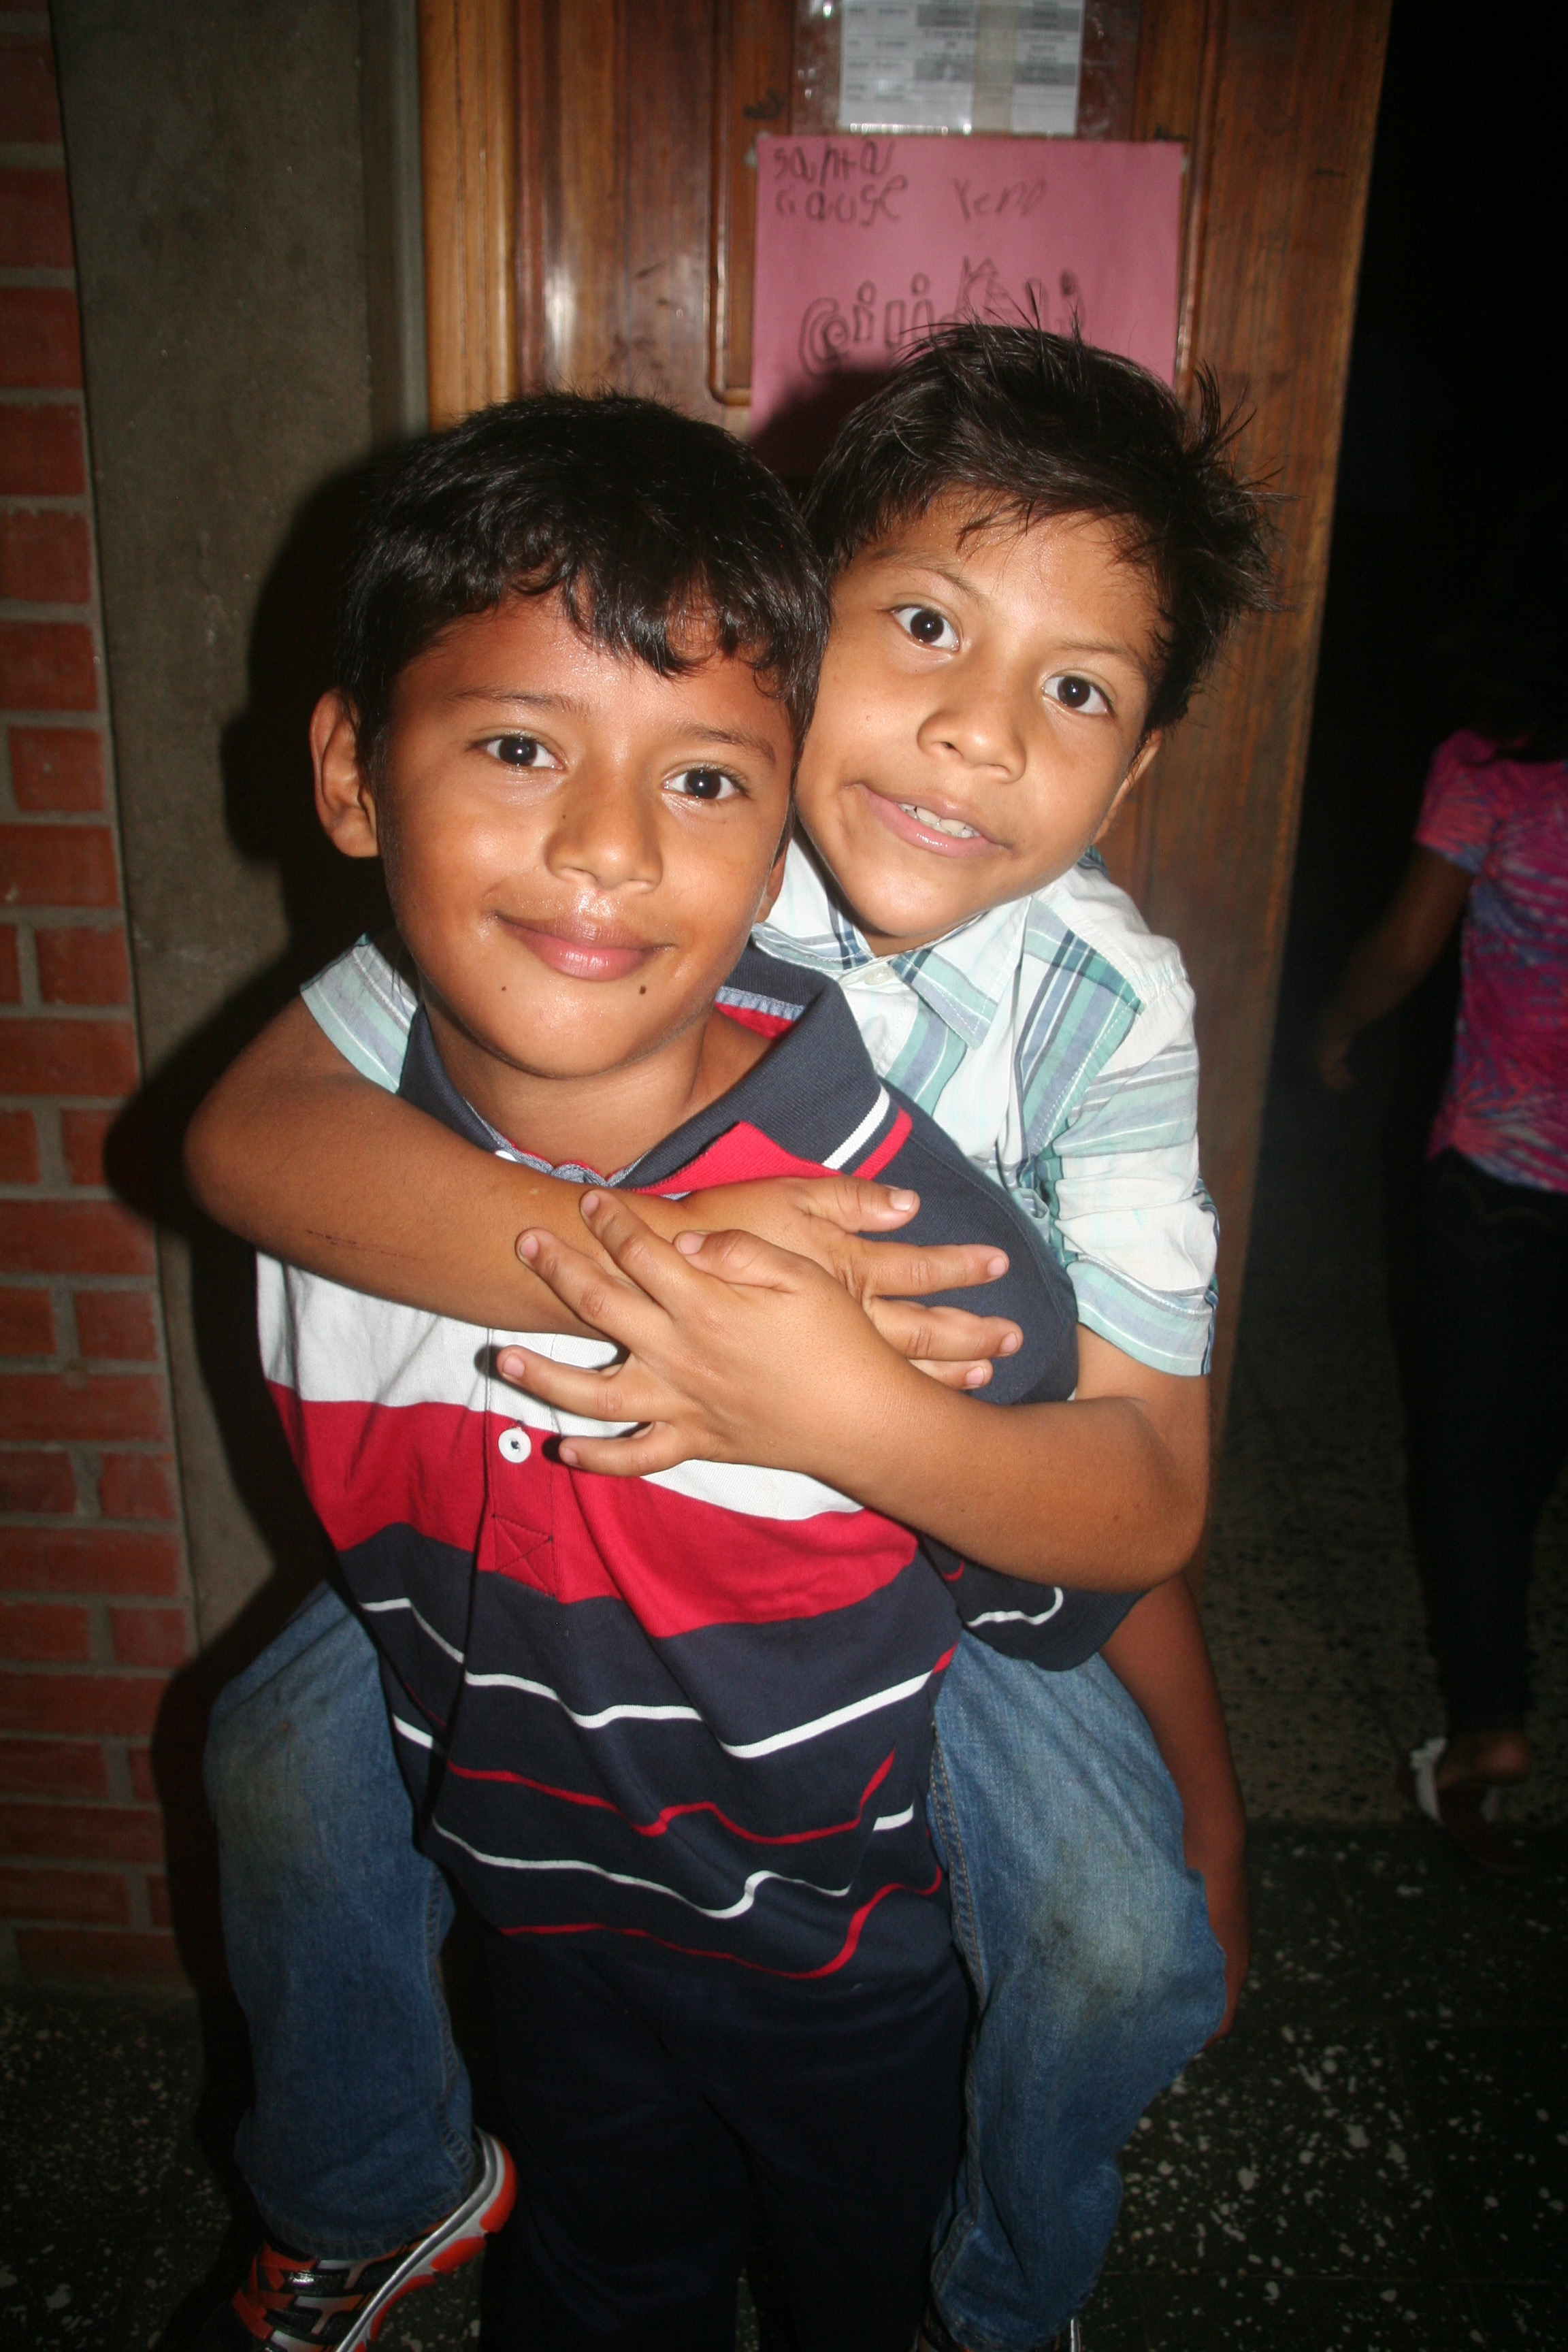 Diego and a friend at the 2015 Christmas party